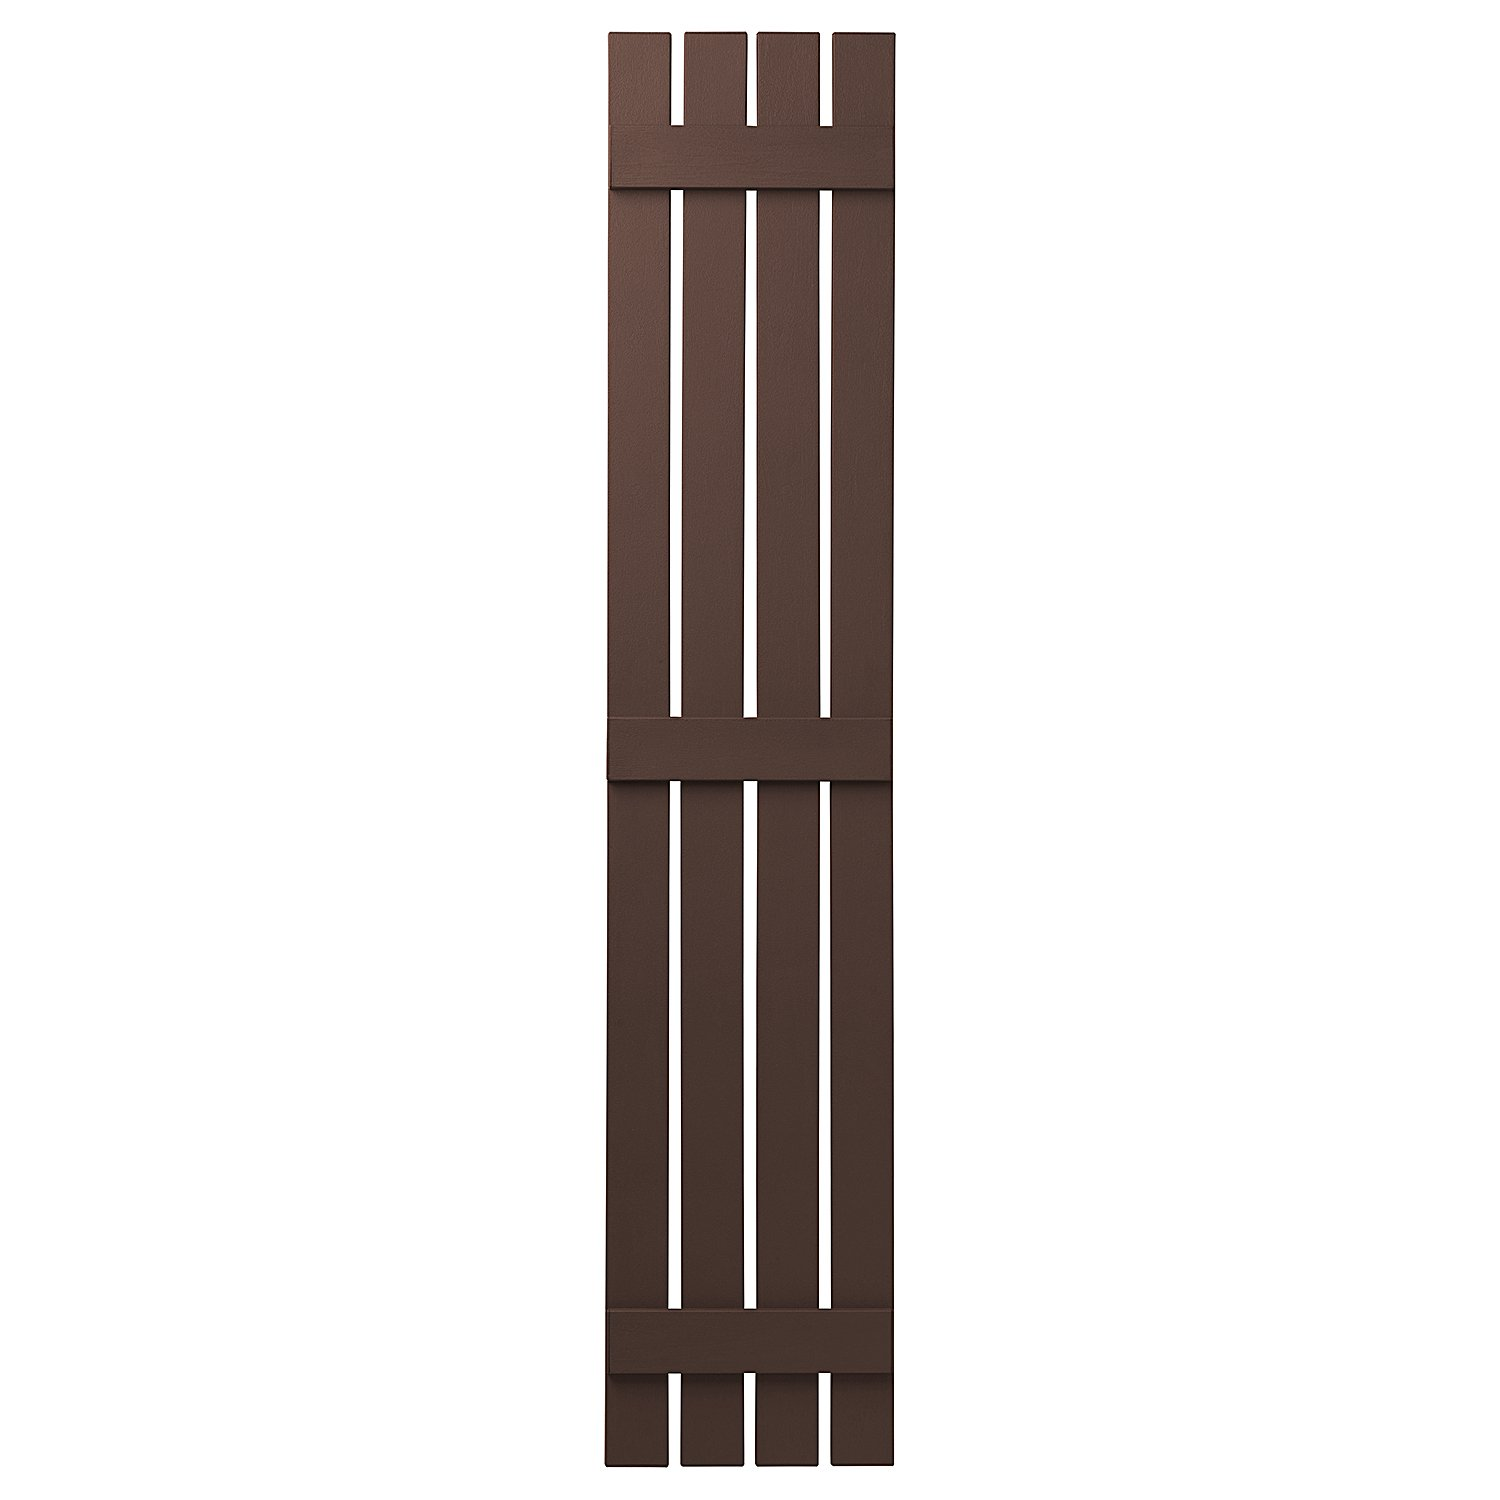 PlyGem Shutters and Accents VIN401681 SL 4 Open Board and Batten Shutter, Terra Brown by PlyGem Shutters and Accents (Image #1)